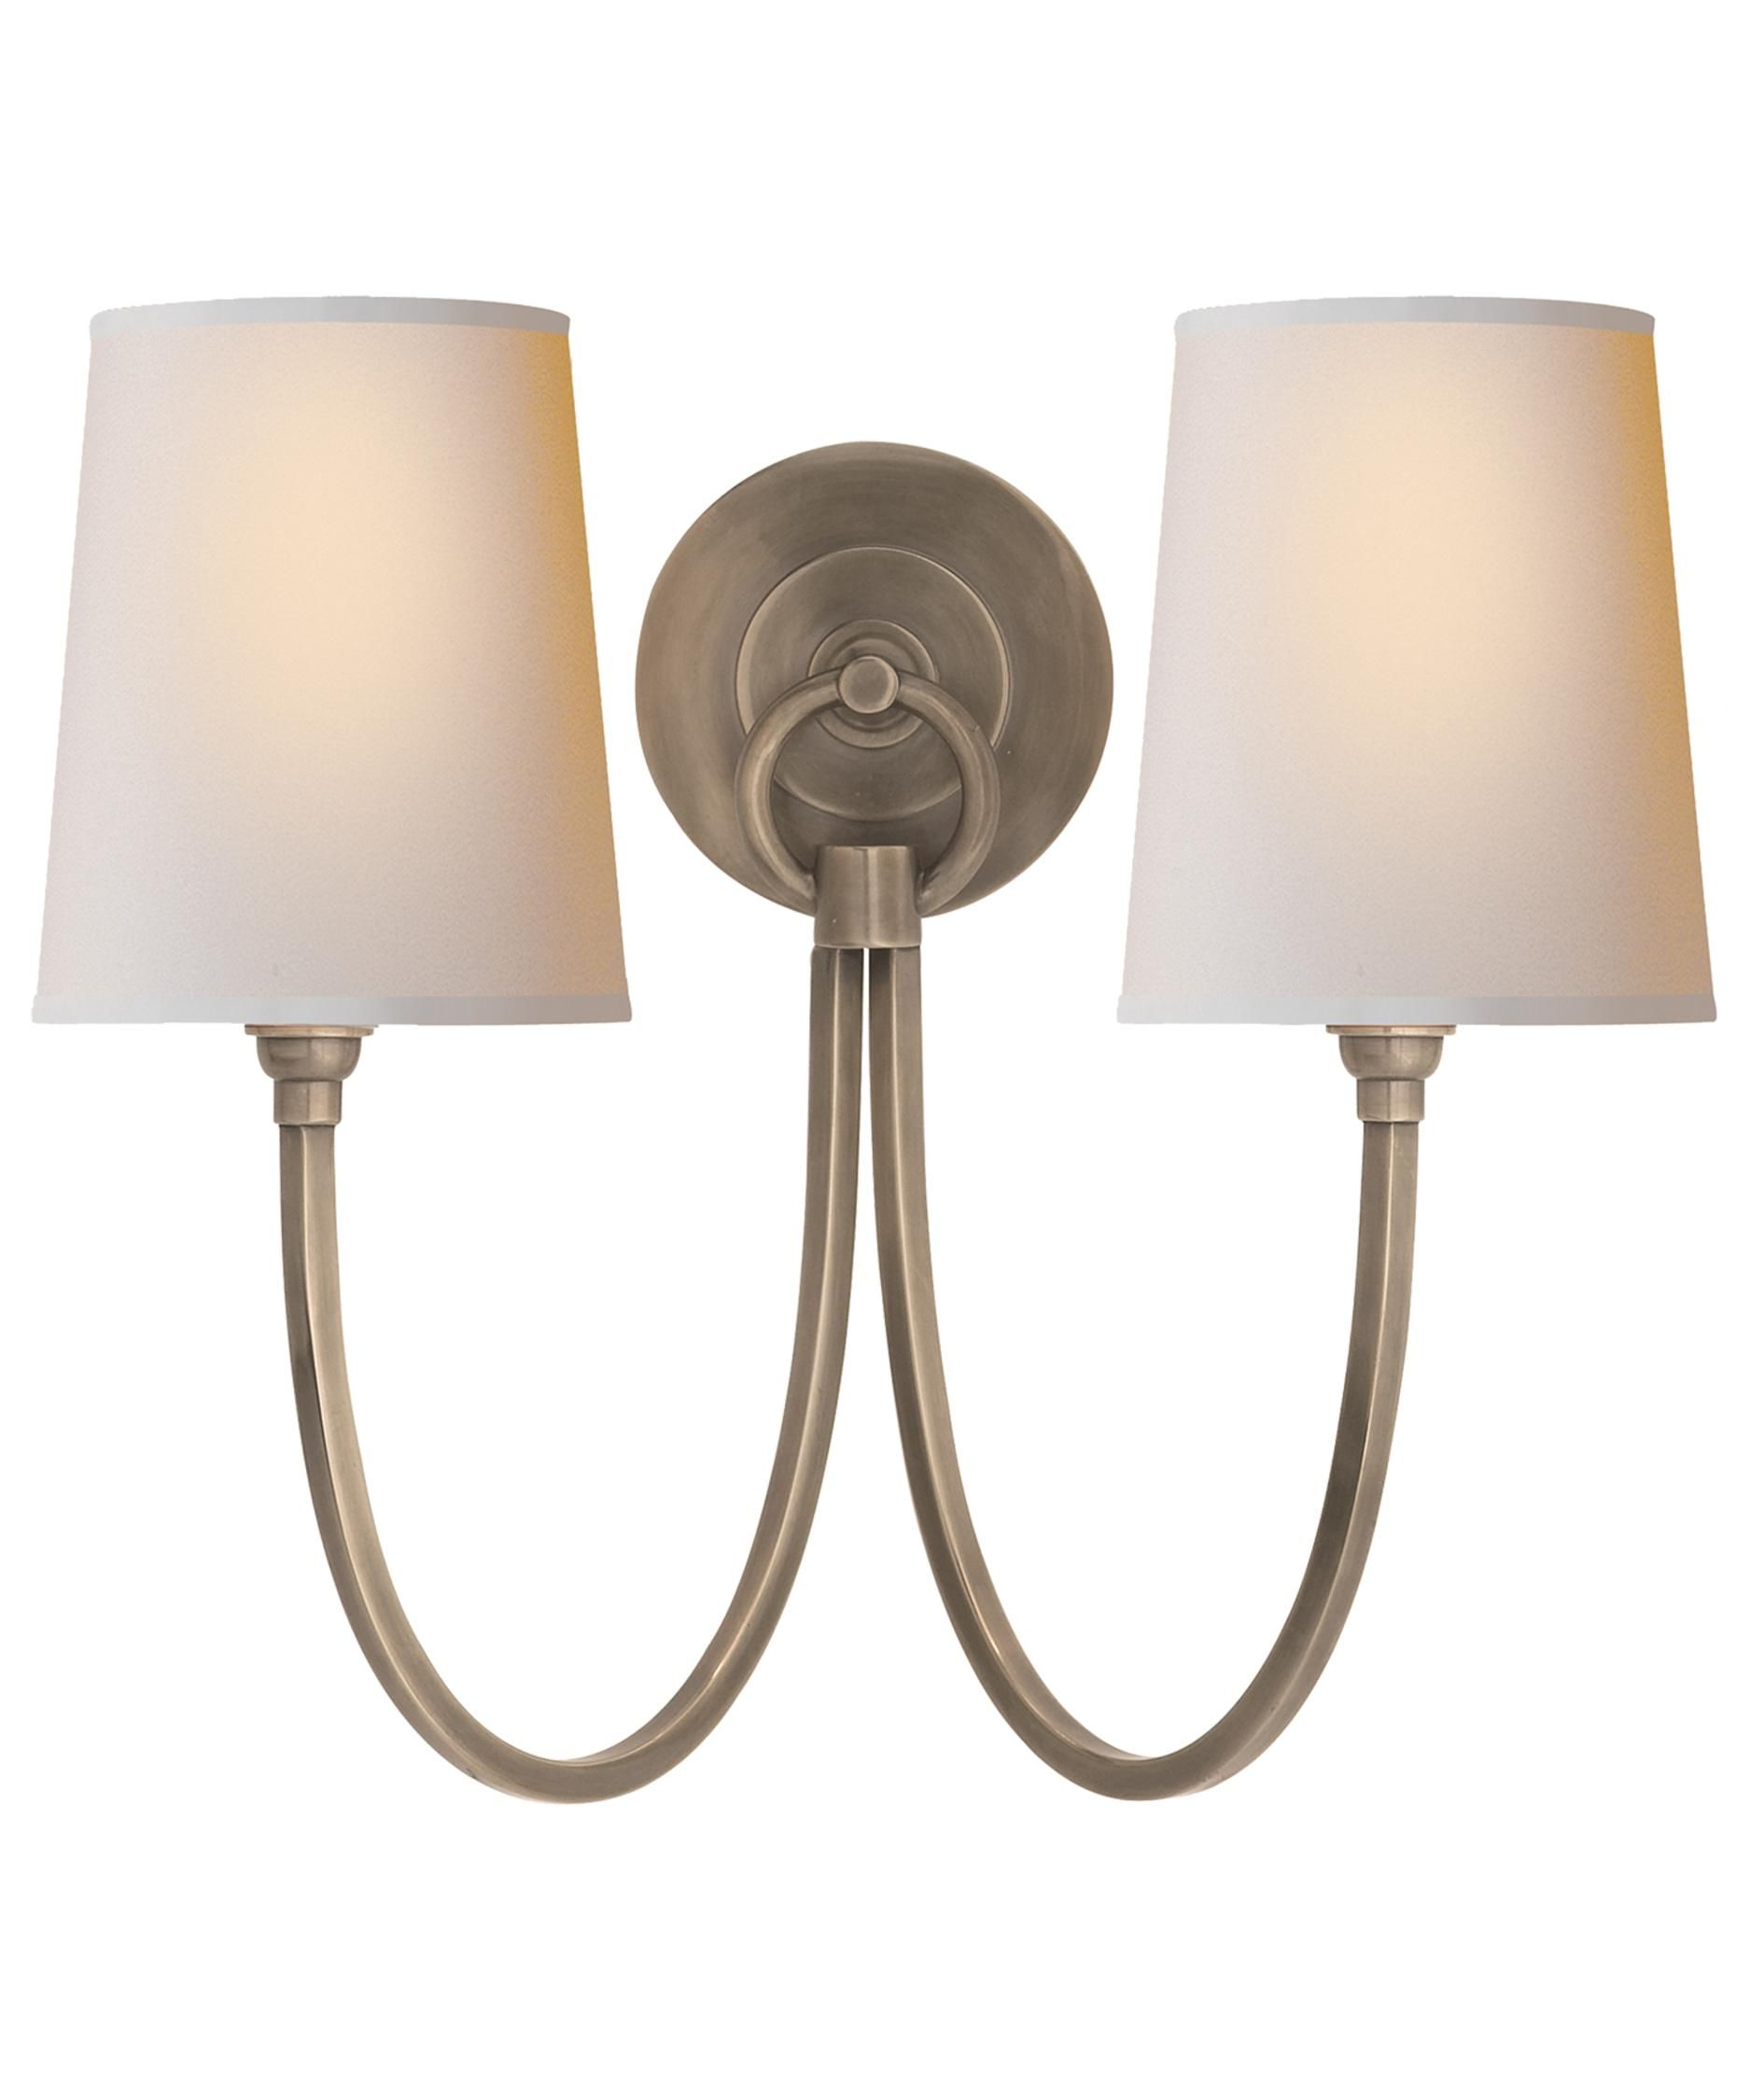 shade to overshot visual bathroom simple flame hairstyle sconces style cranberry sconce torch clear with comfort